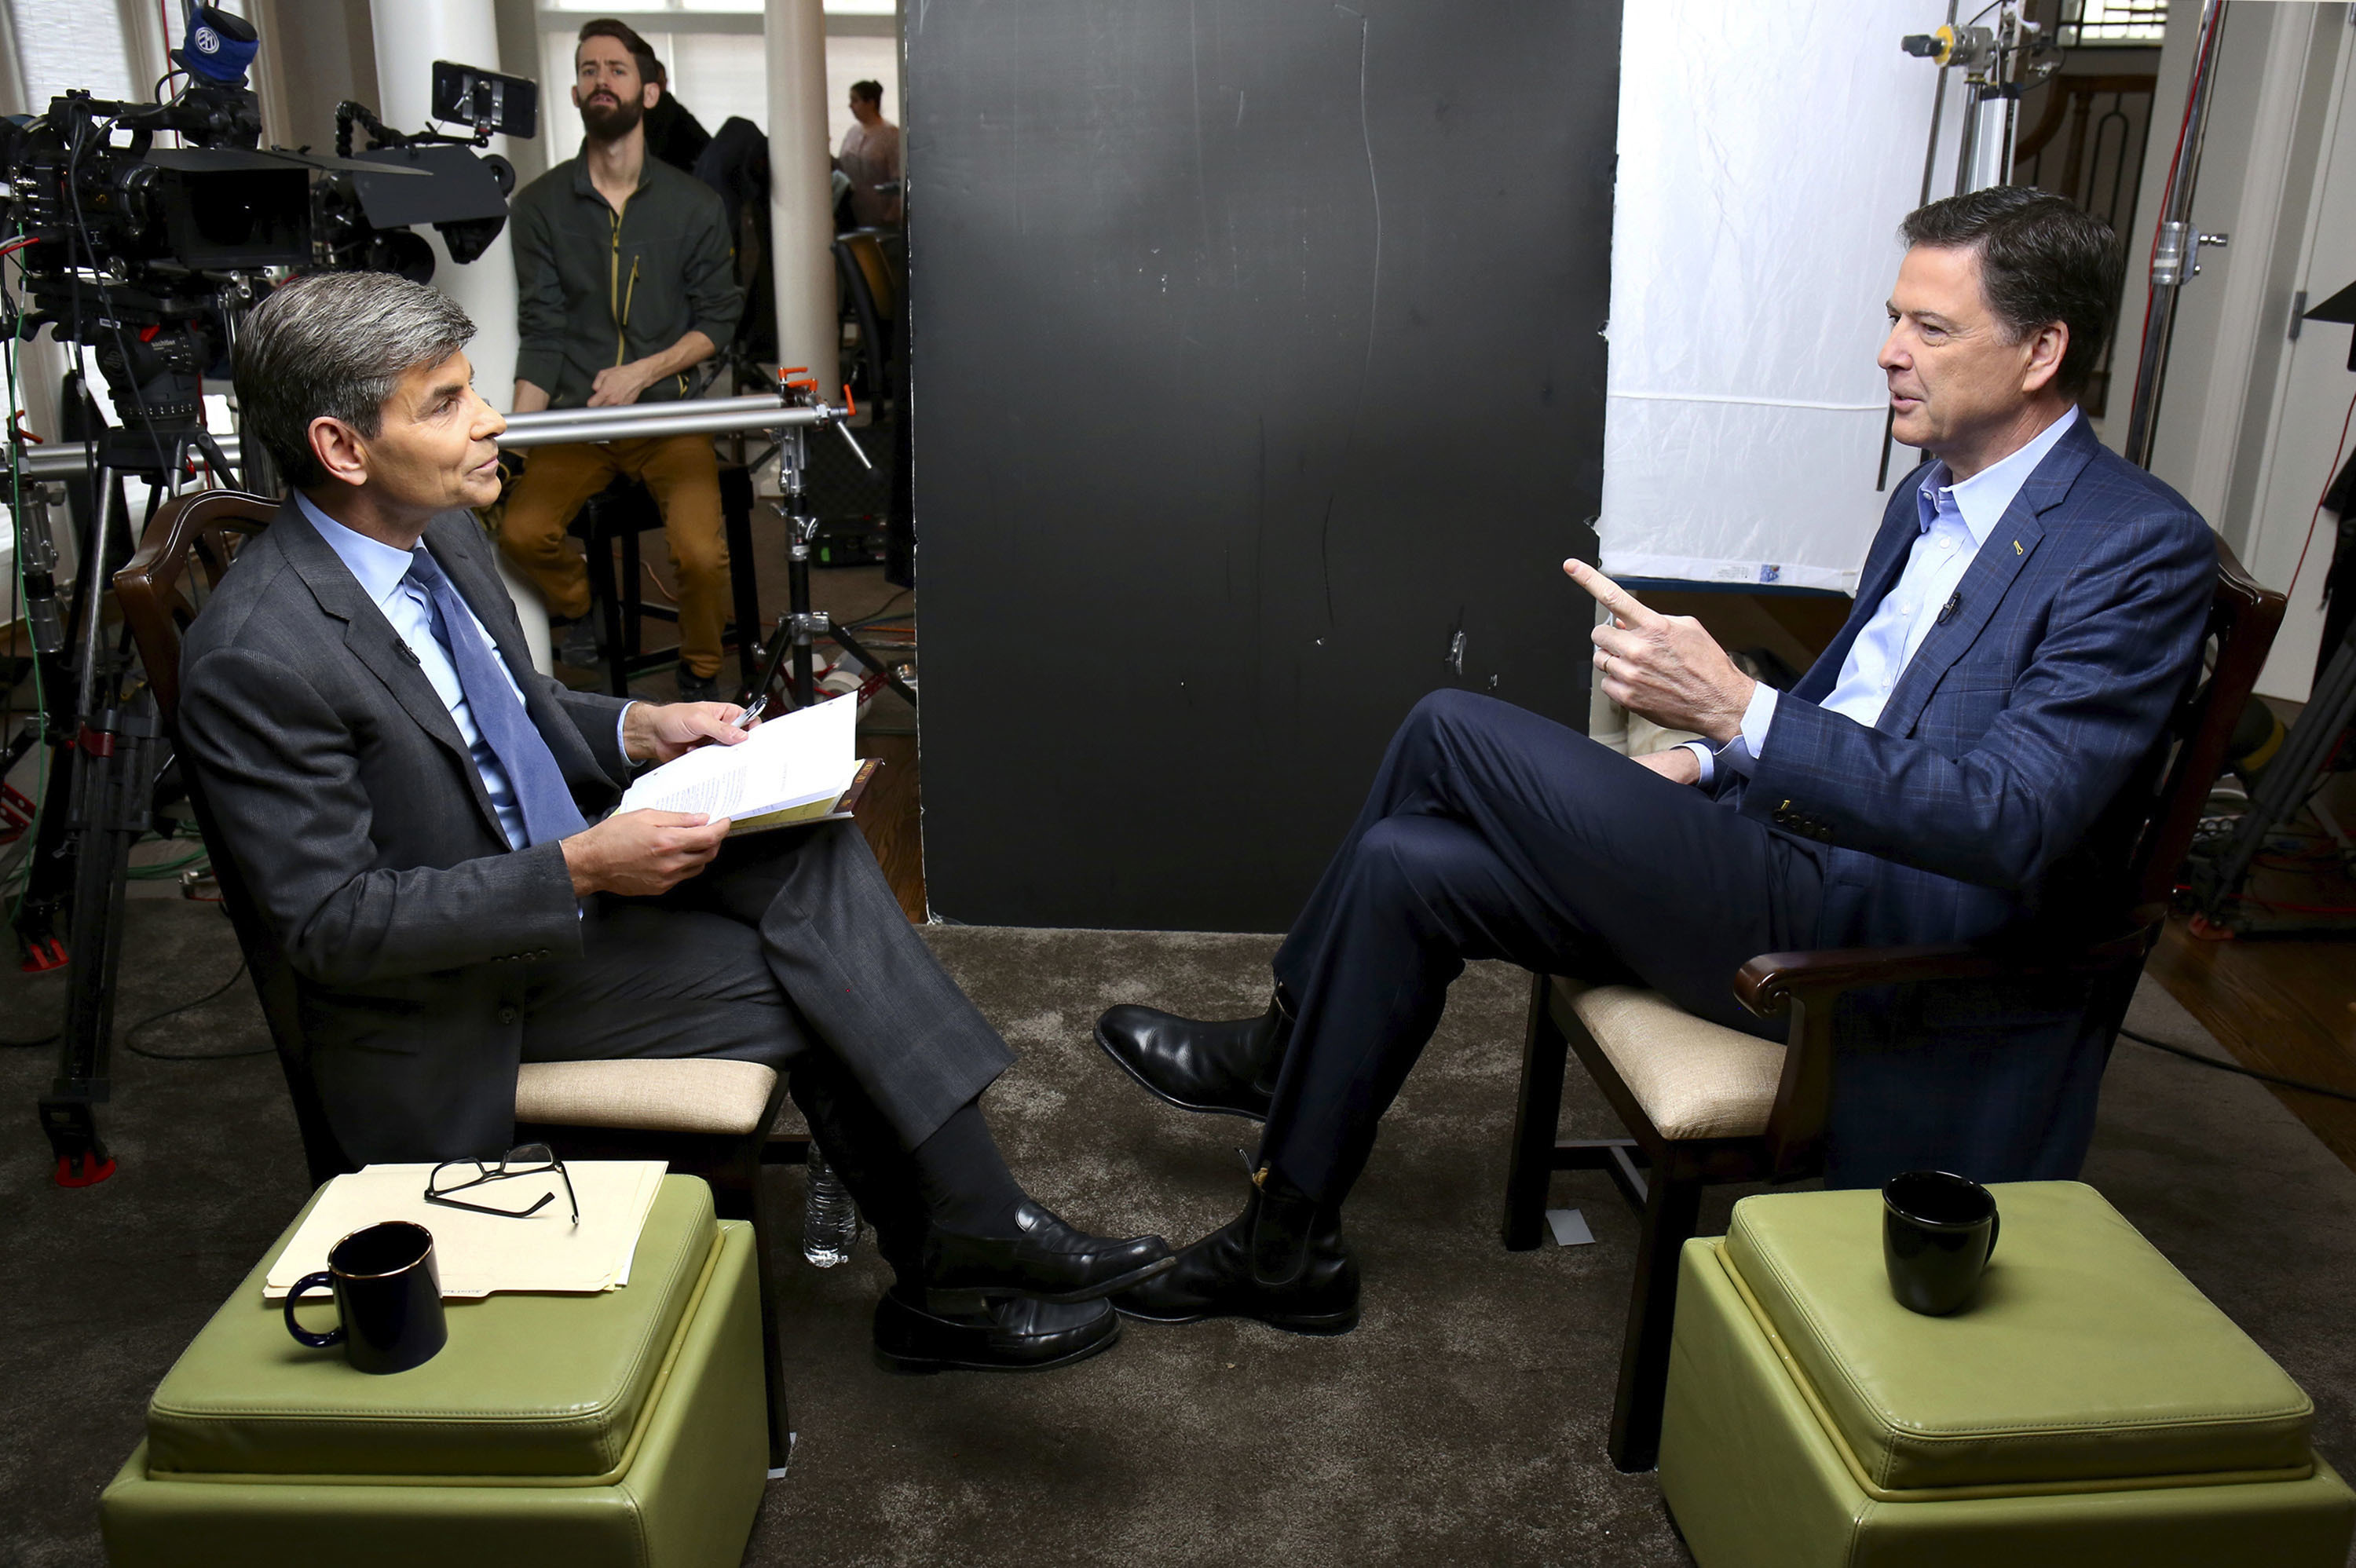 Sean Hannity's tweetstorm to Stephanopoulos ranks high in Comey interview responses